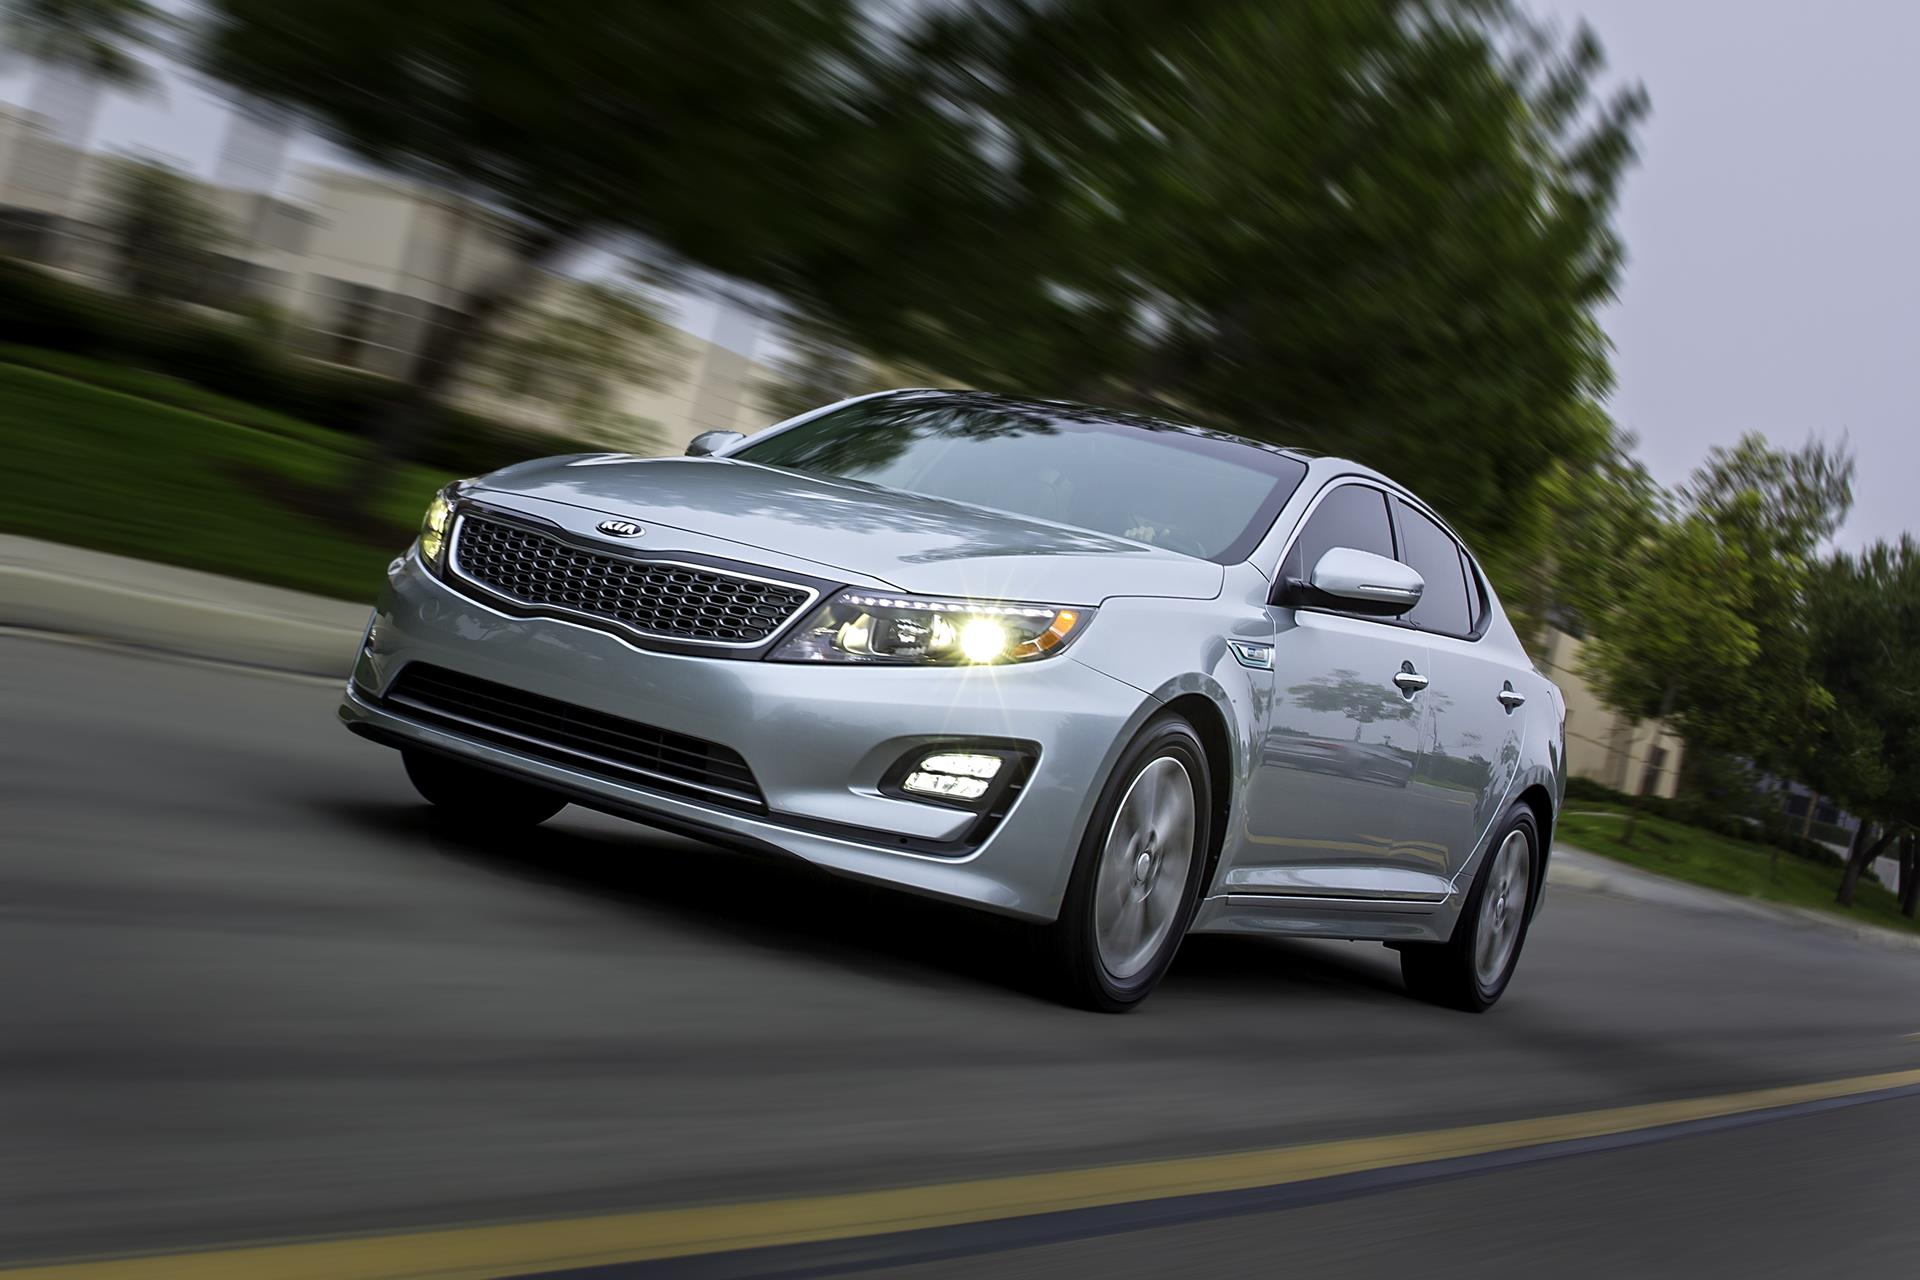 2016 kia optima hybrid technical specifications and data. Black Bedroom Furniture Sets. Home Design Ideas